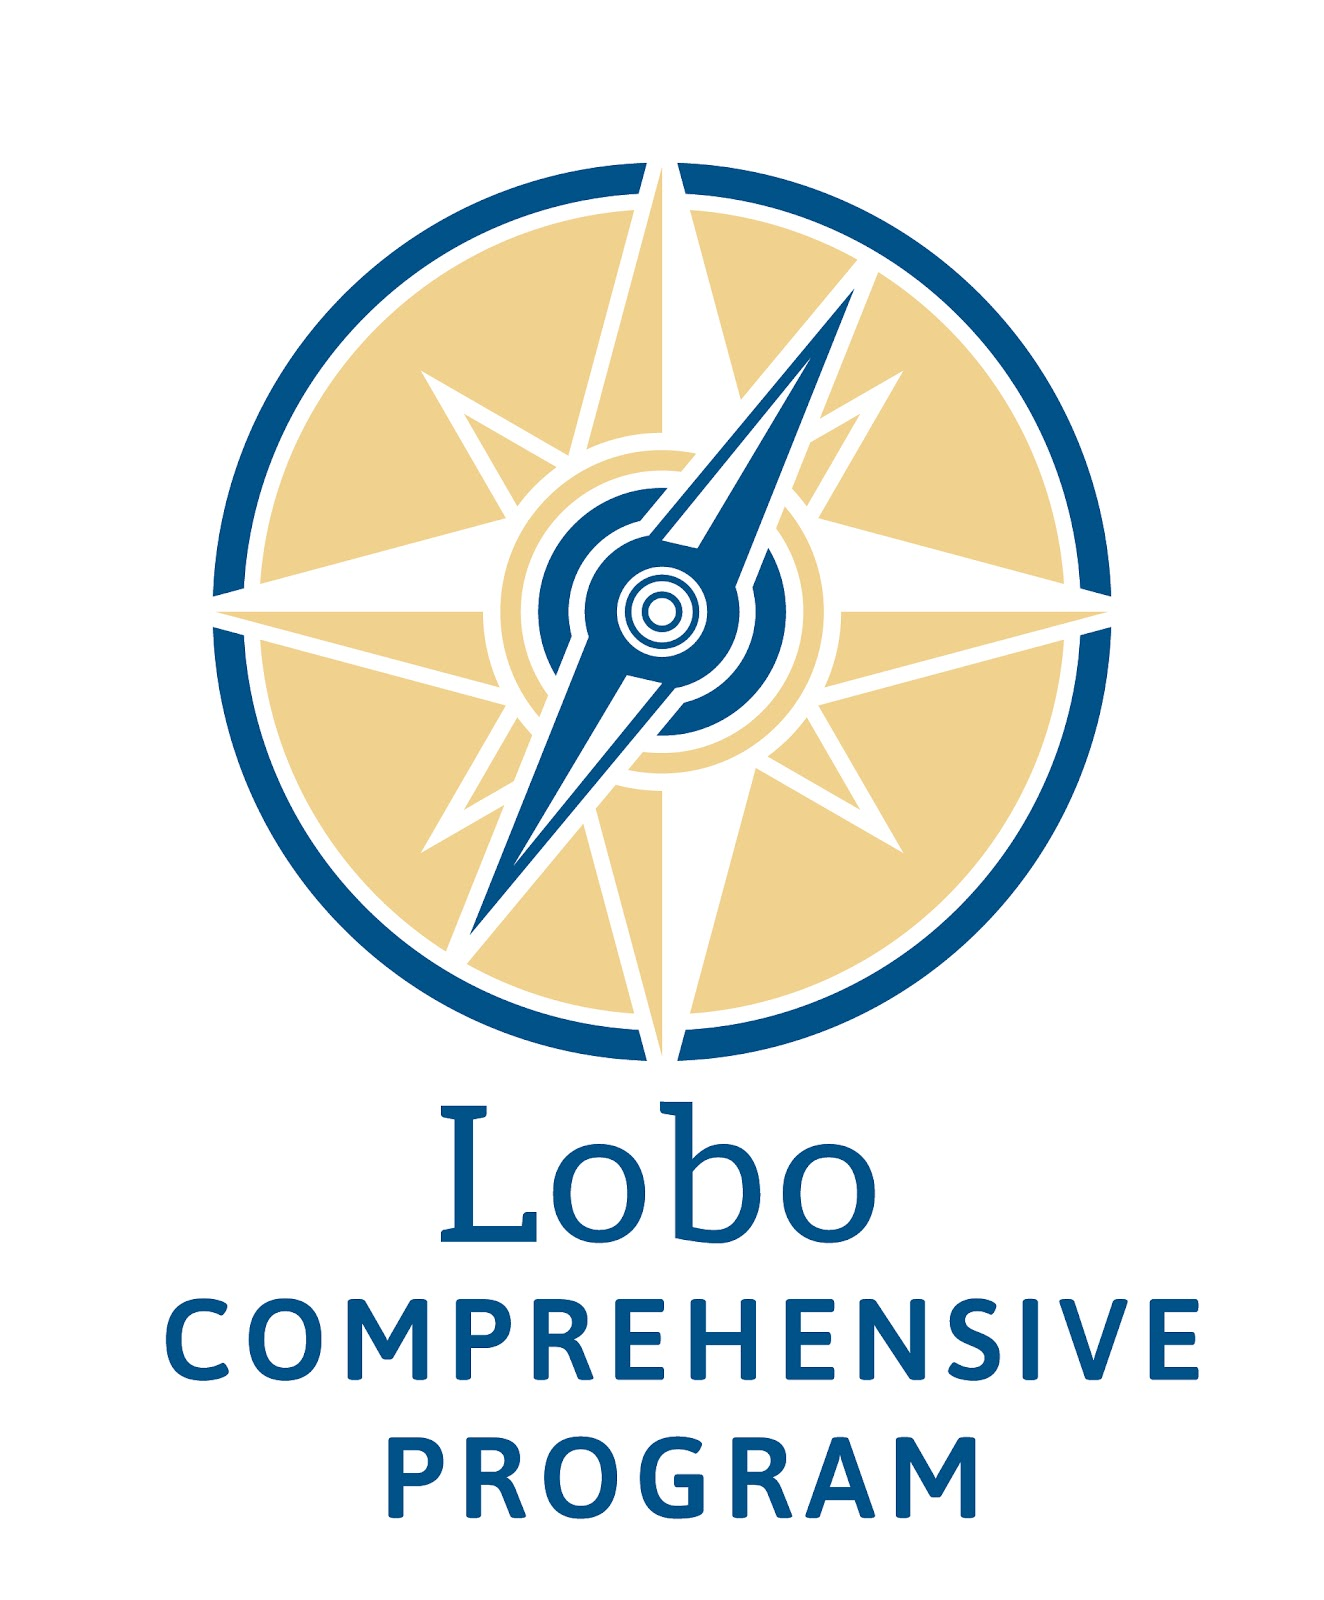 Lobo Comprehensive Program Logo